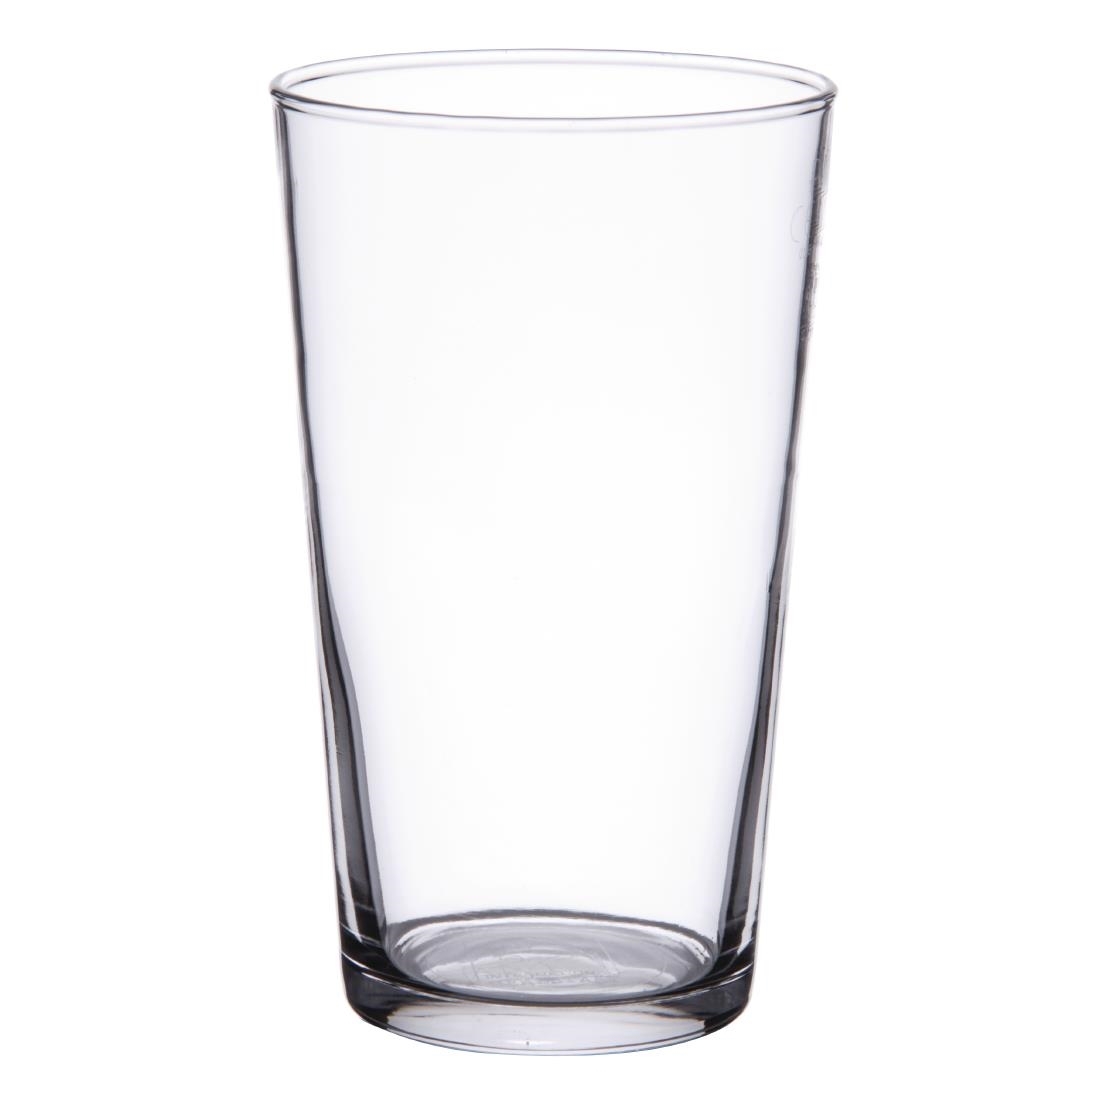 Image of Arcoroc Beer Glasses 570ml CE Marked (Pack of 48) Pack of 48